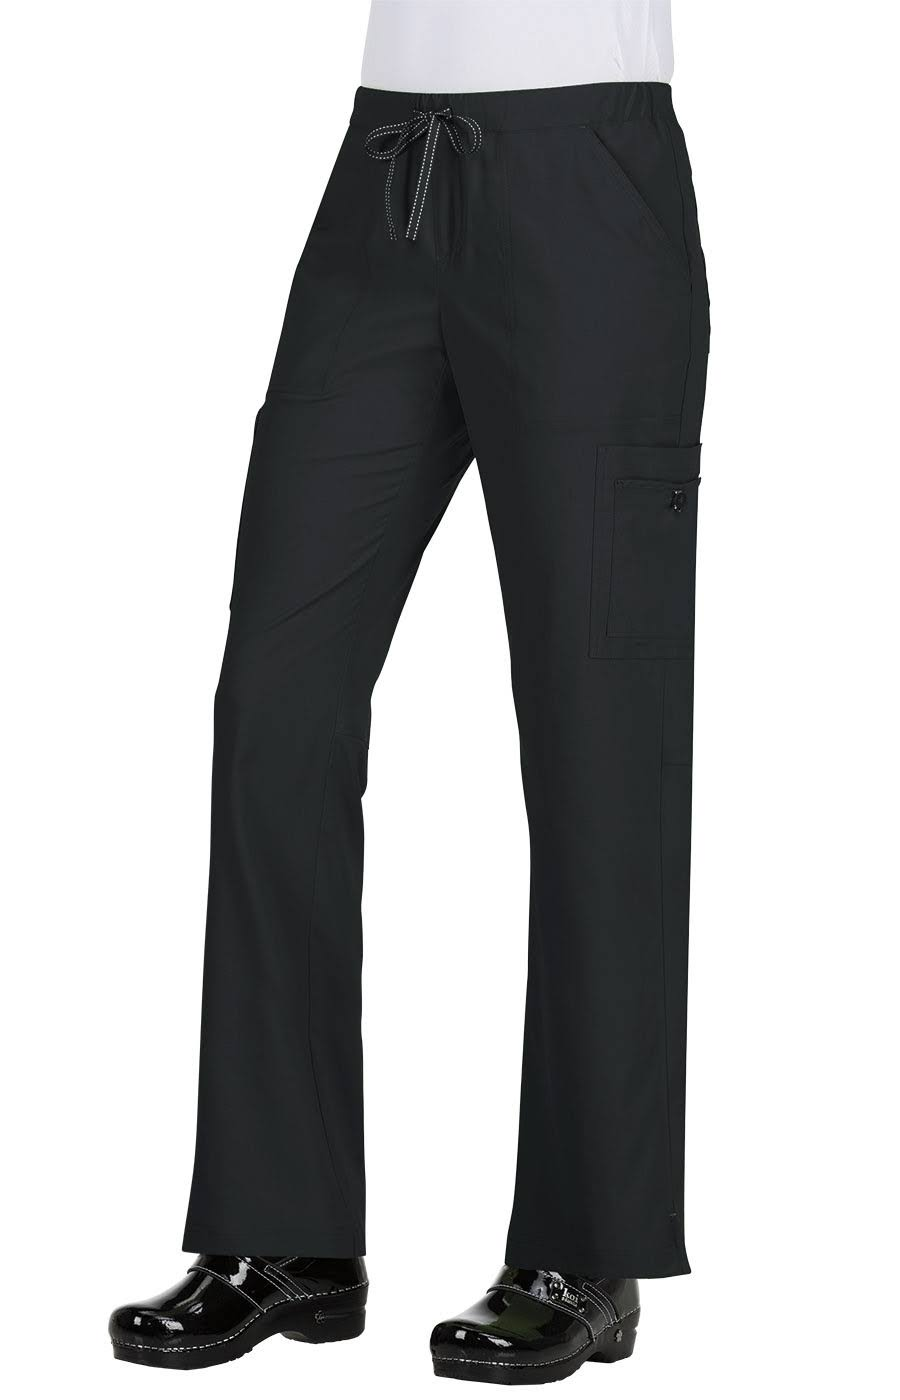 Koi Basics Women's Holly Cargo Scrub Pants - 2x - Black